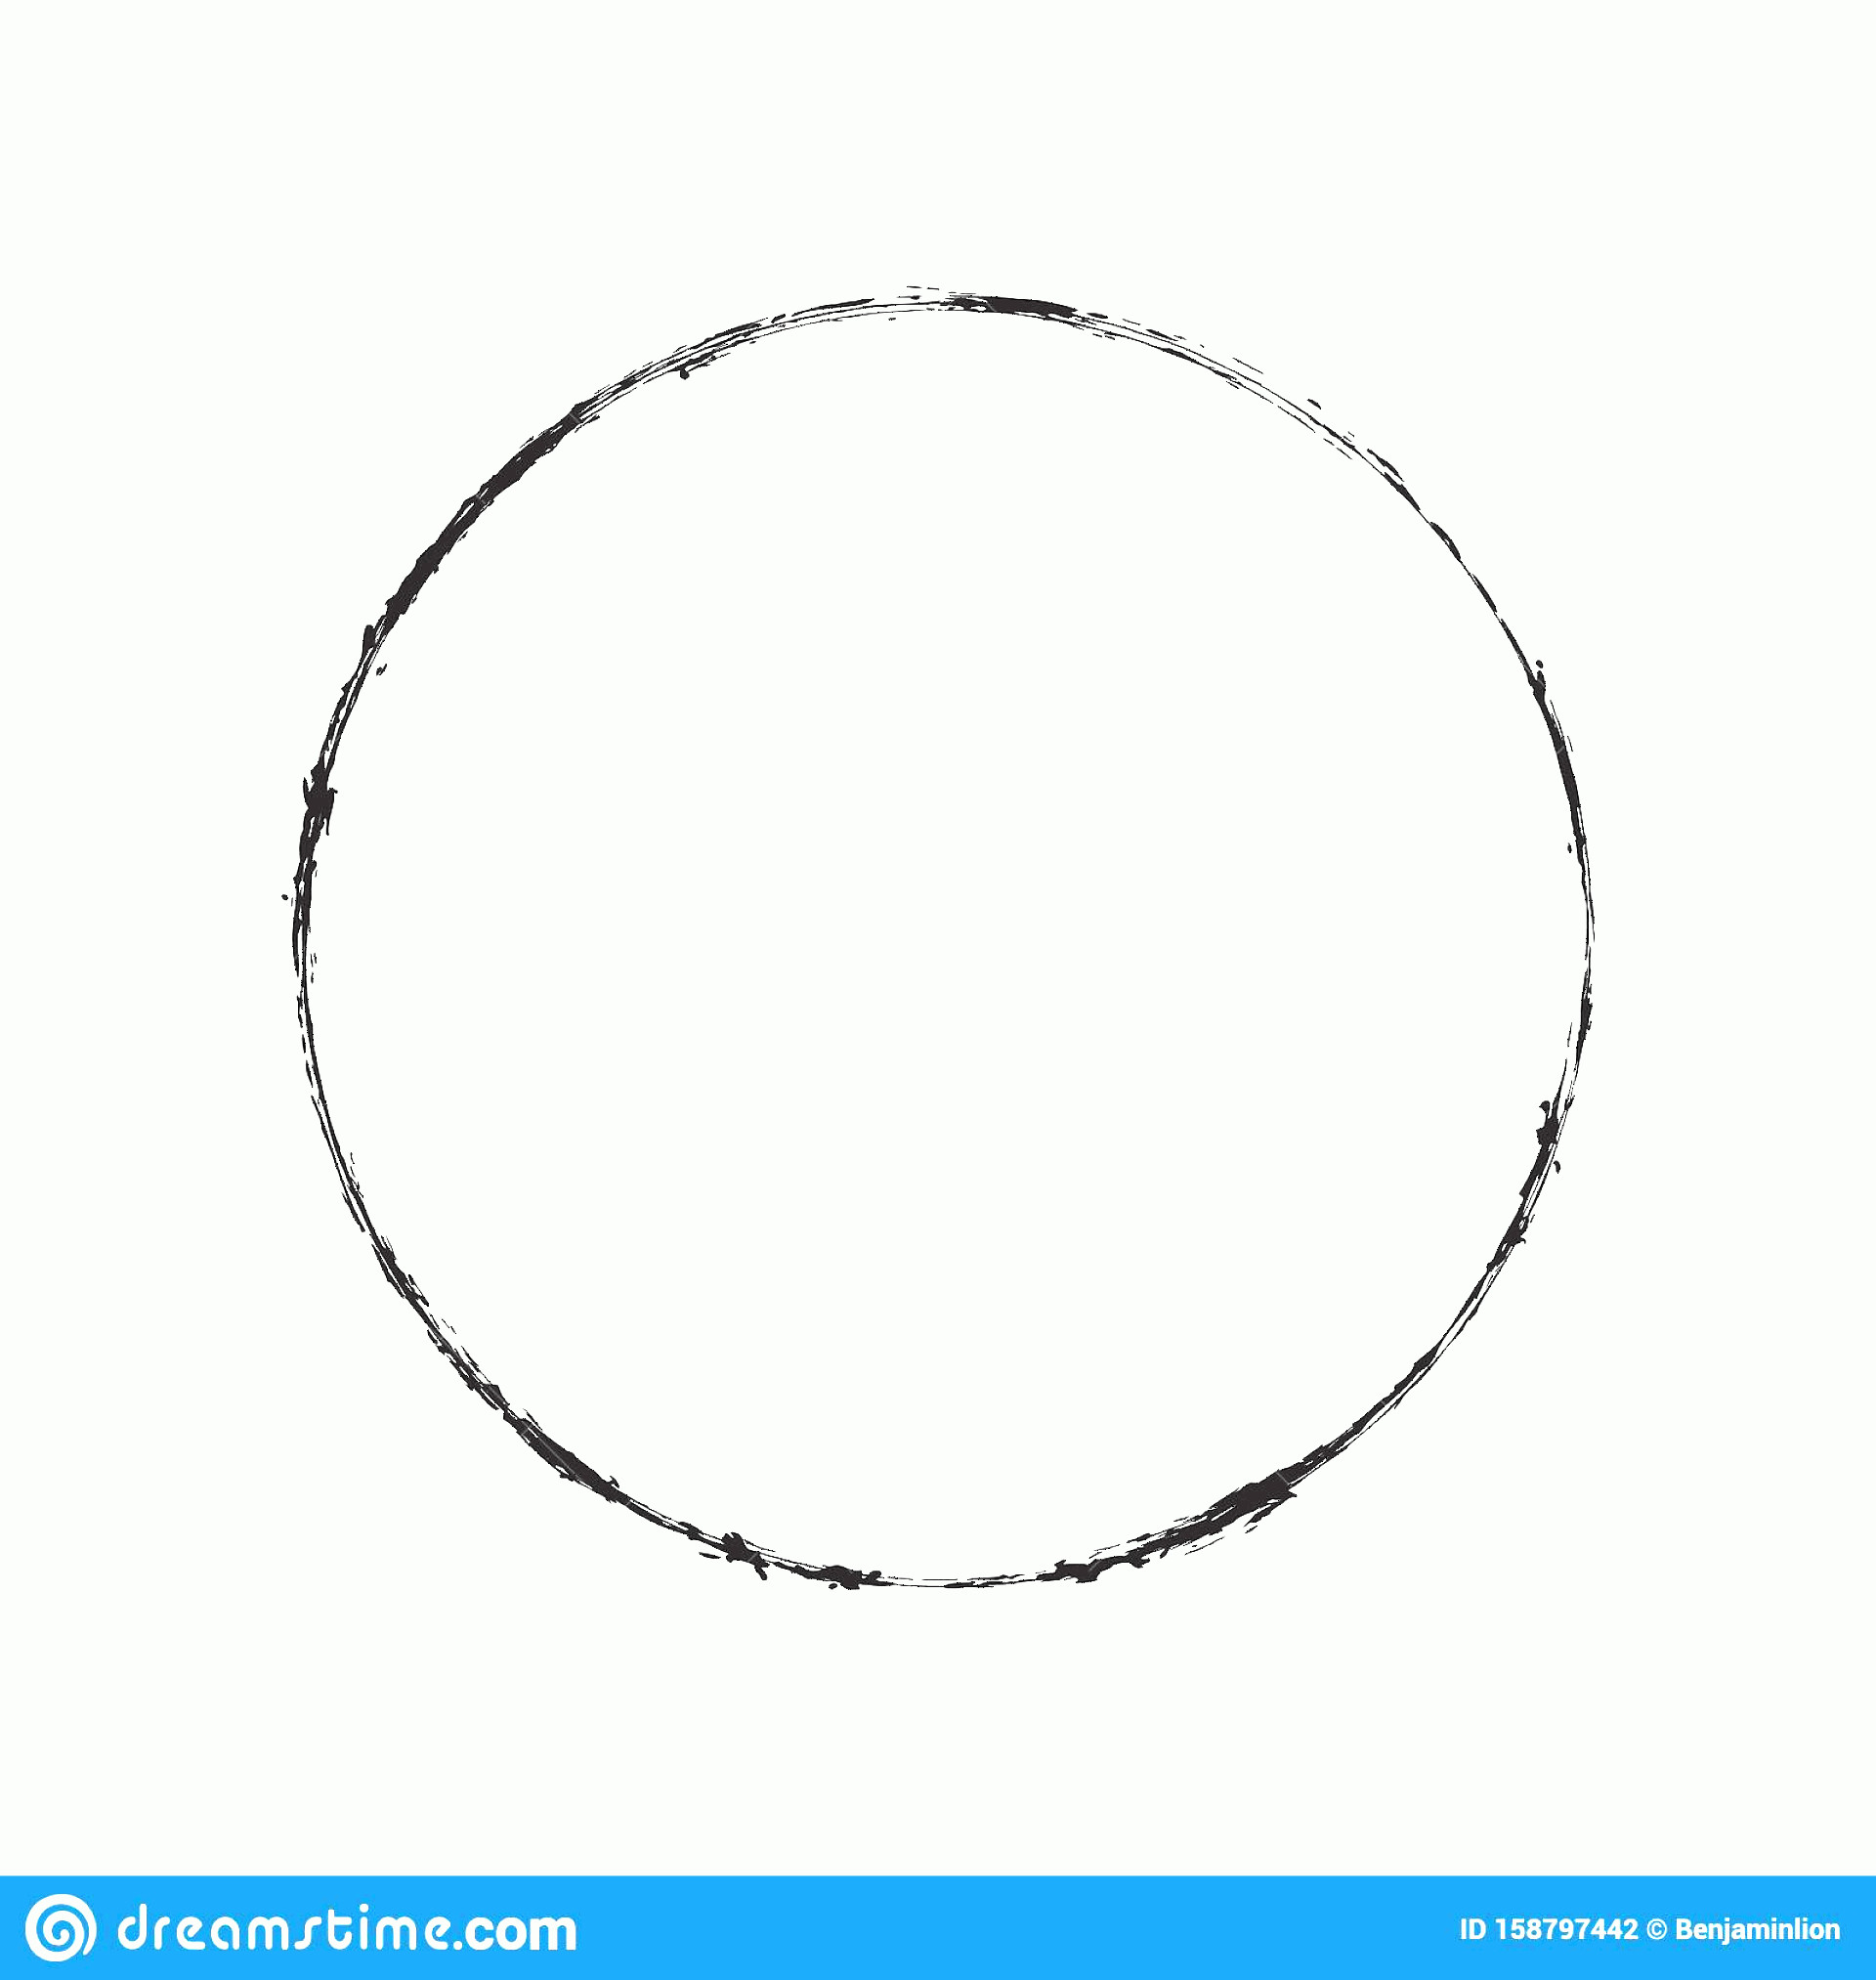 Distressed Border Circle Vector: Grunge Circle Stamp Draft Mockup Distress Overlay Basis Texture Your Design Thin Thorn Scratchy Circular Ring Edge Frame Image